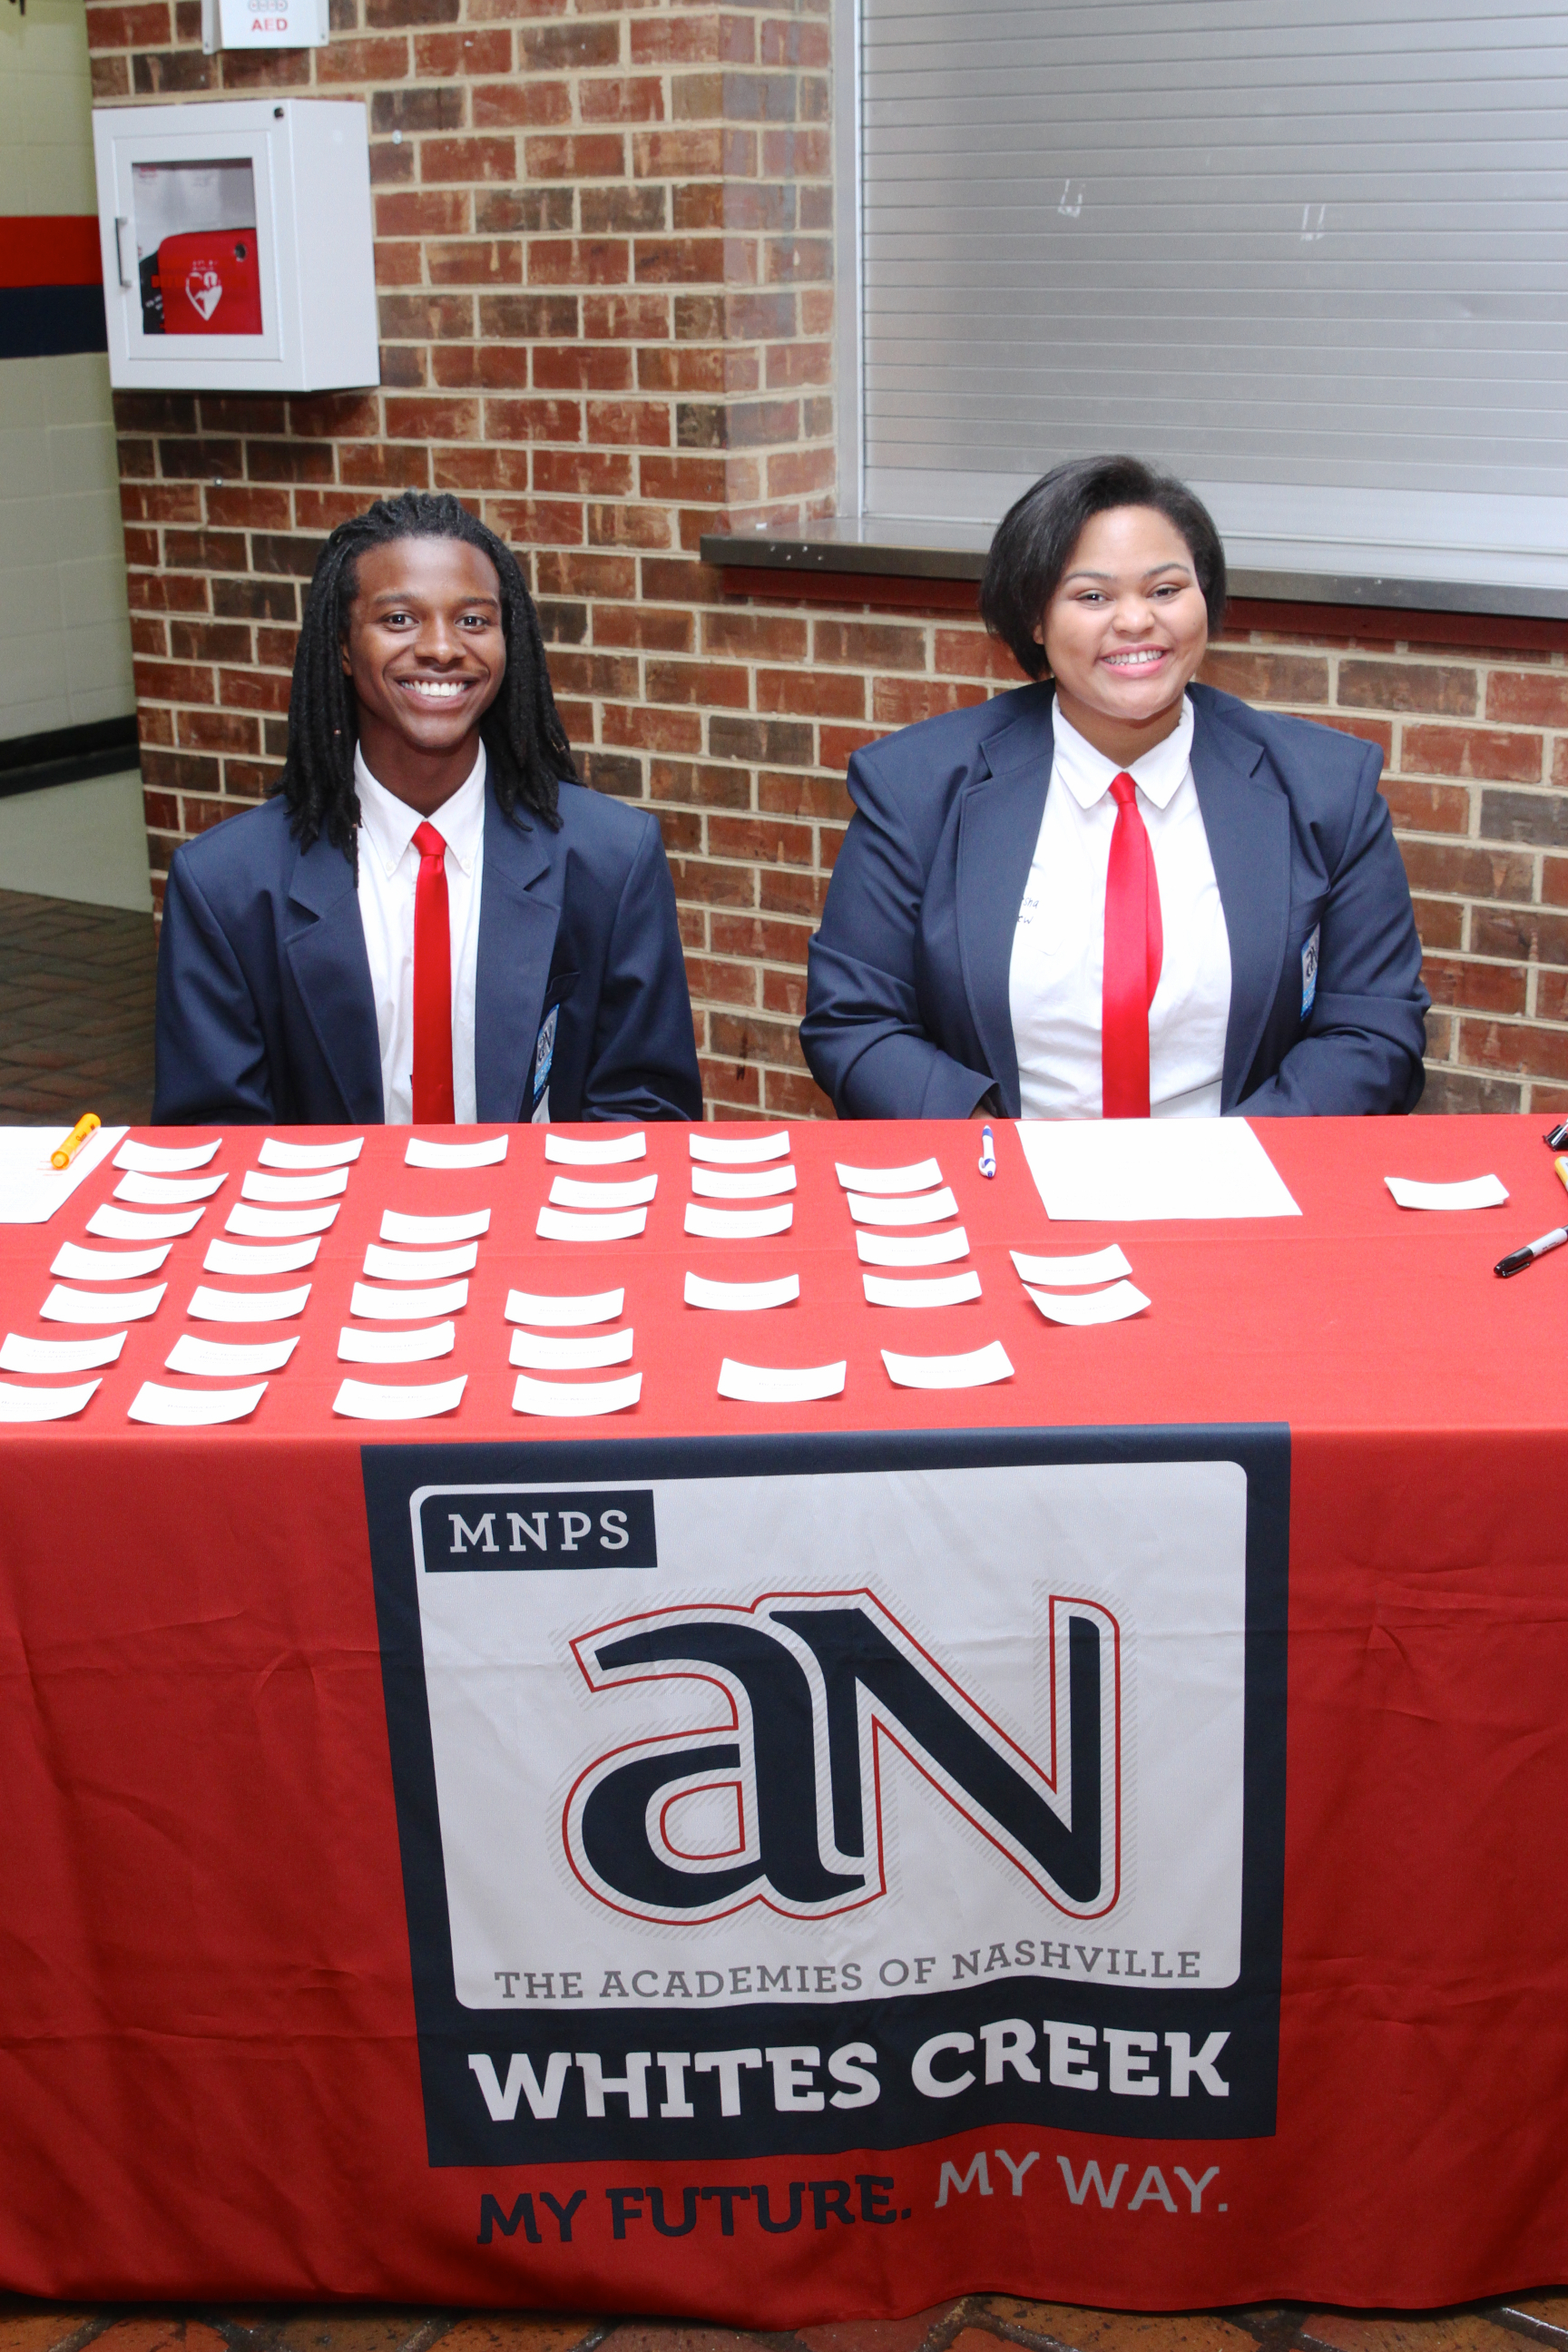 Whites Creek High School Academy Ambassadors welcome guests to the VIP Tour.